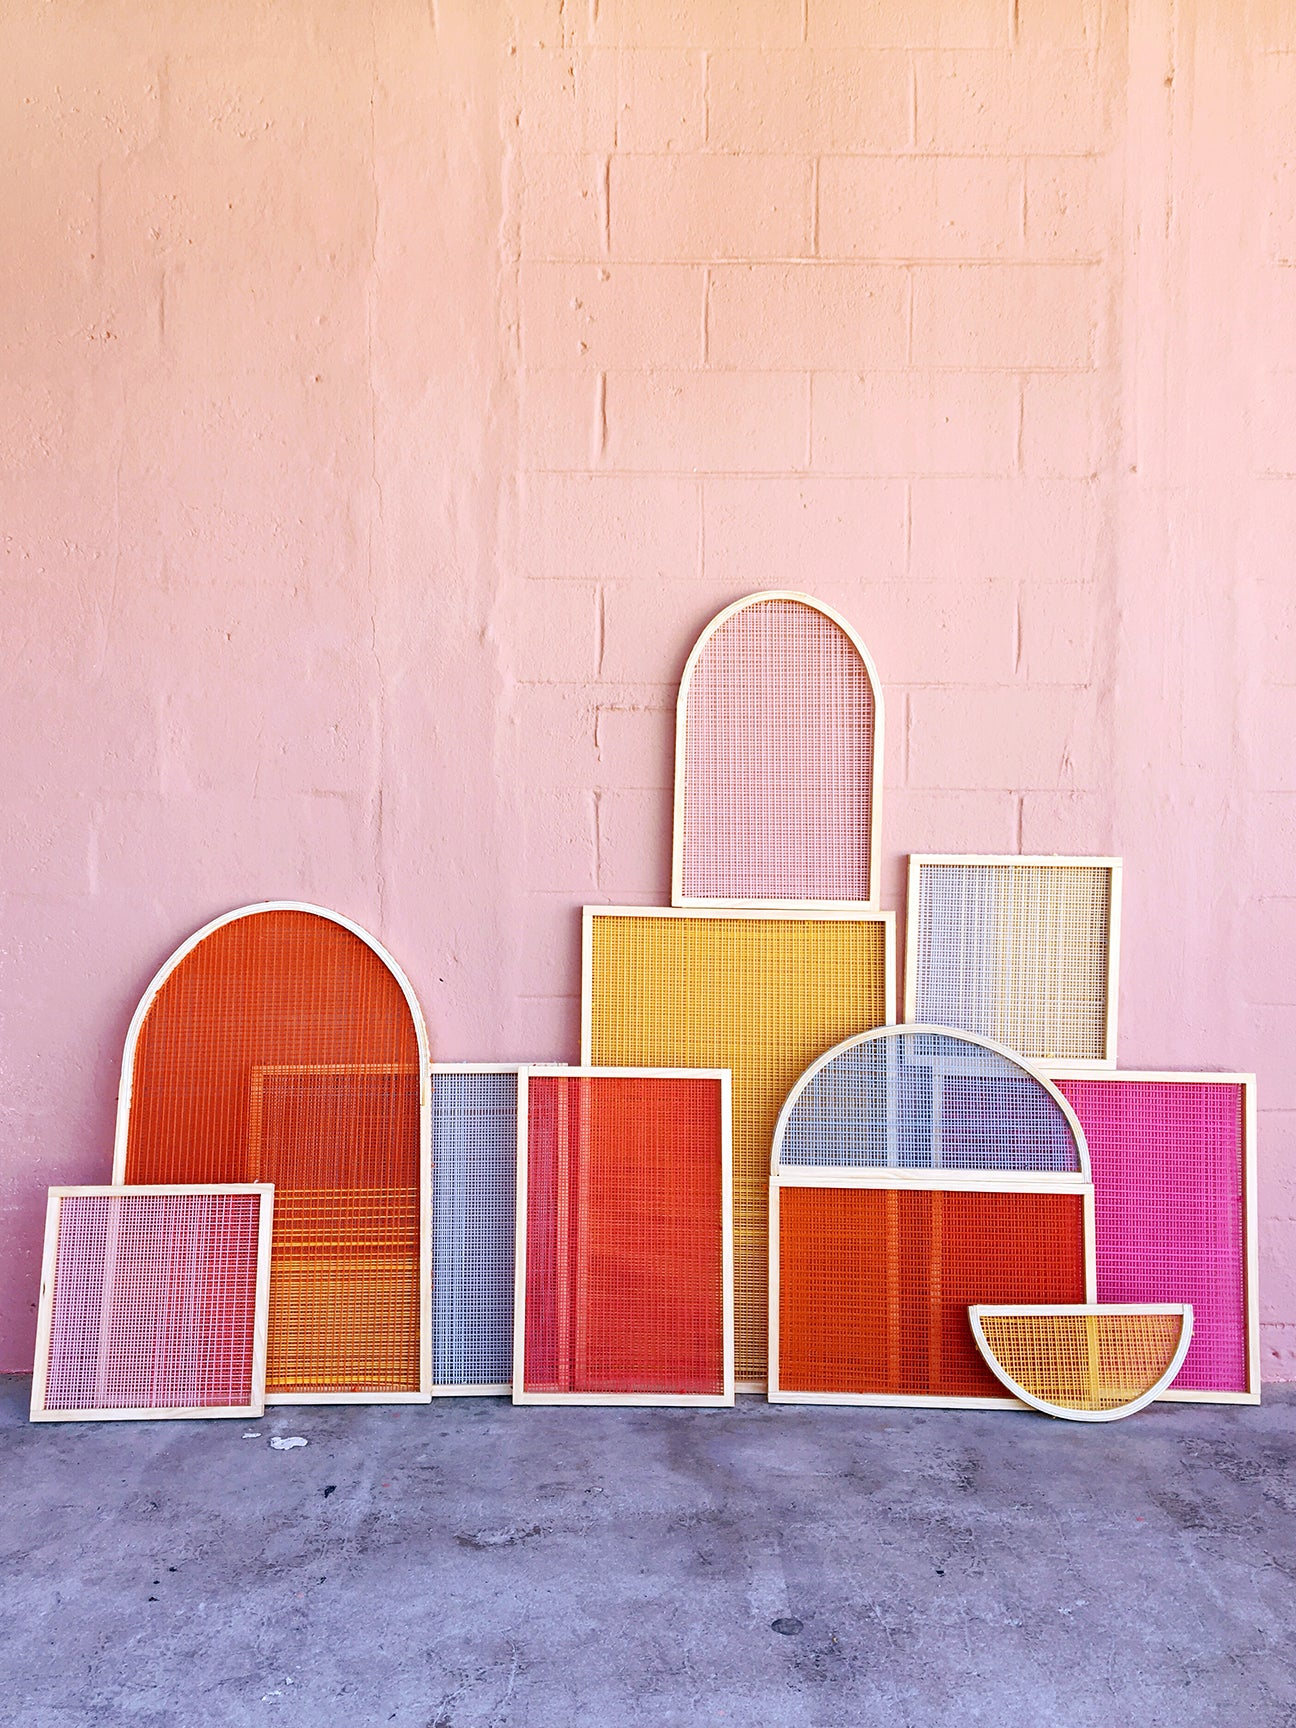 colorful woven wall hangings leaning against a pink exterior wall